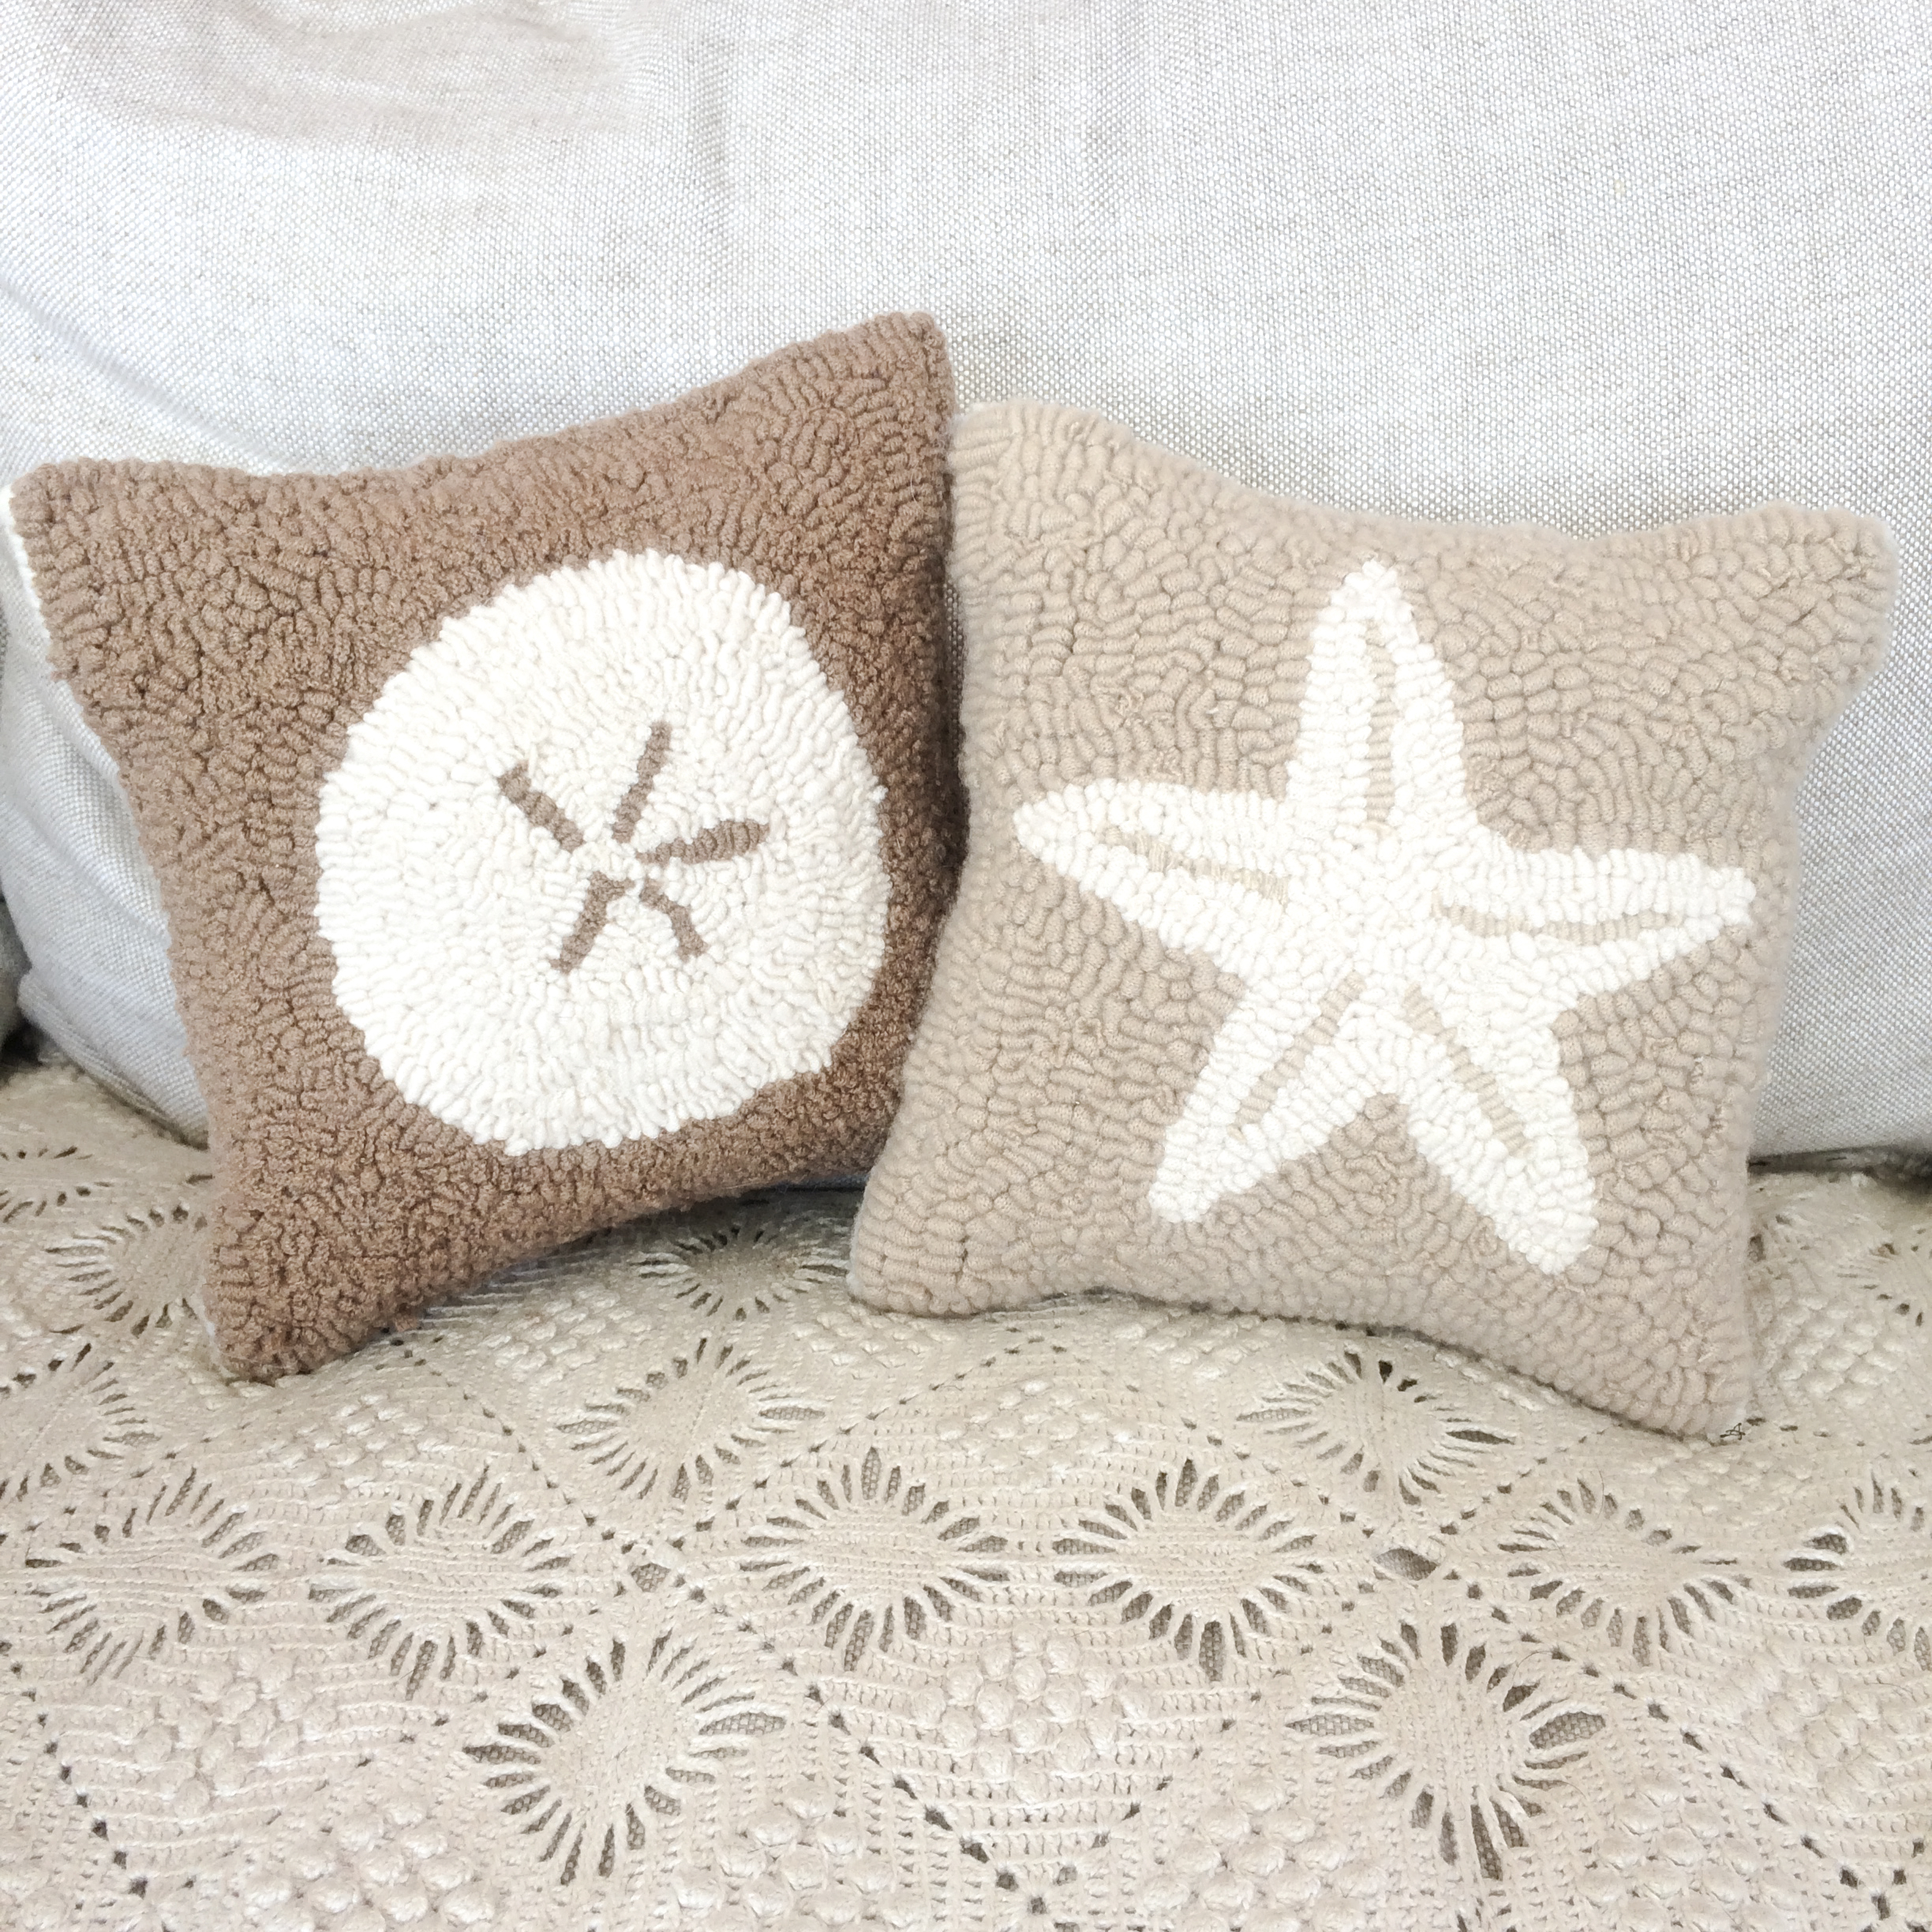 igh coastal home modern nautical house beach pillow pillows